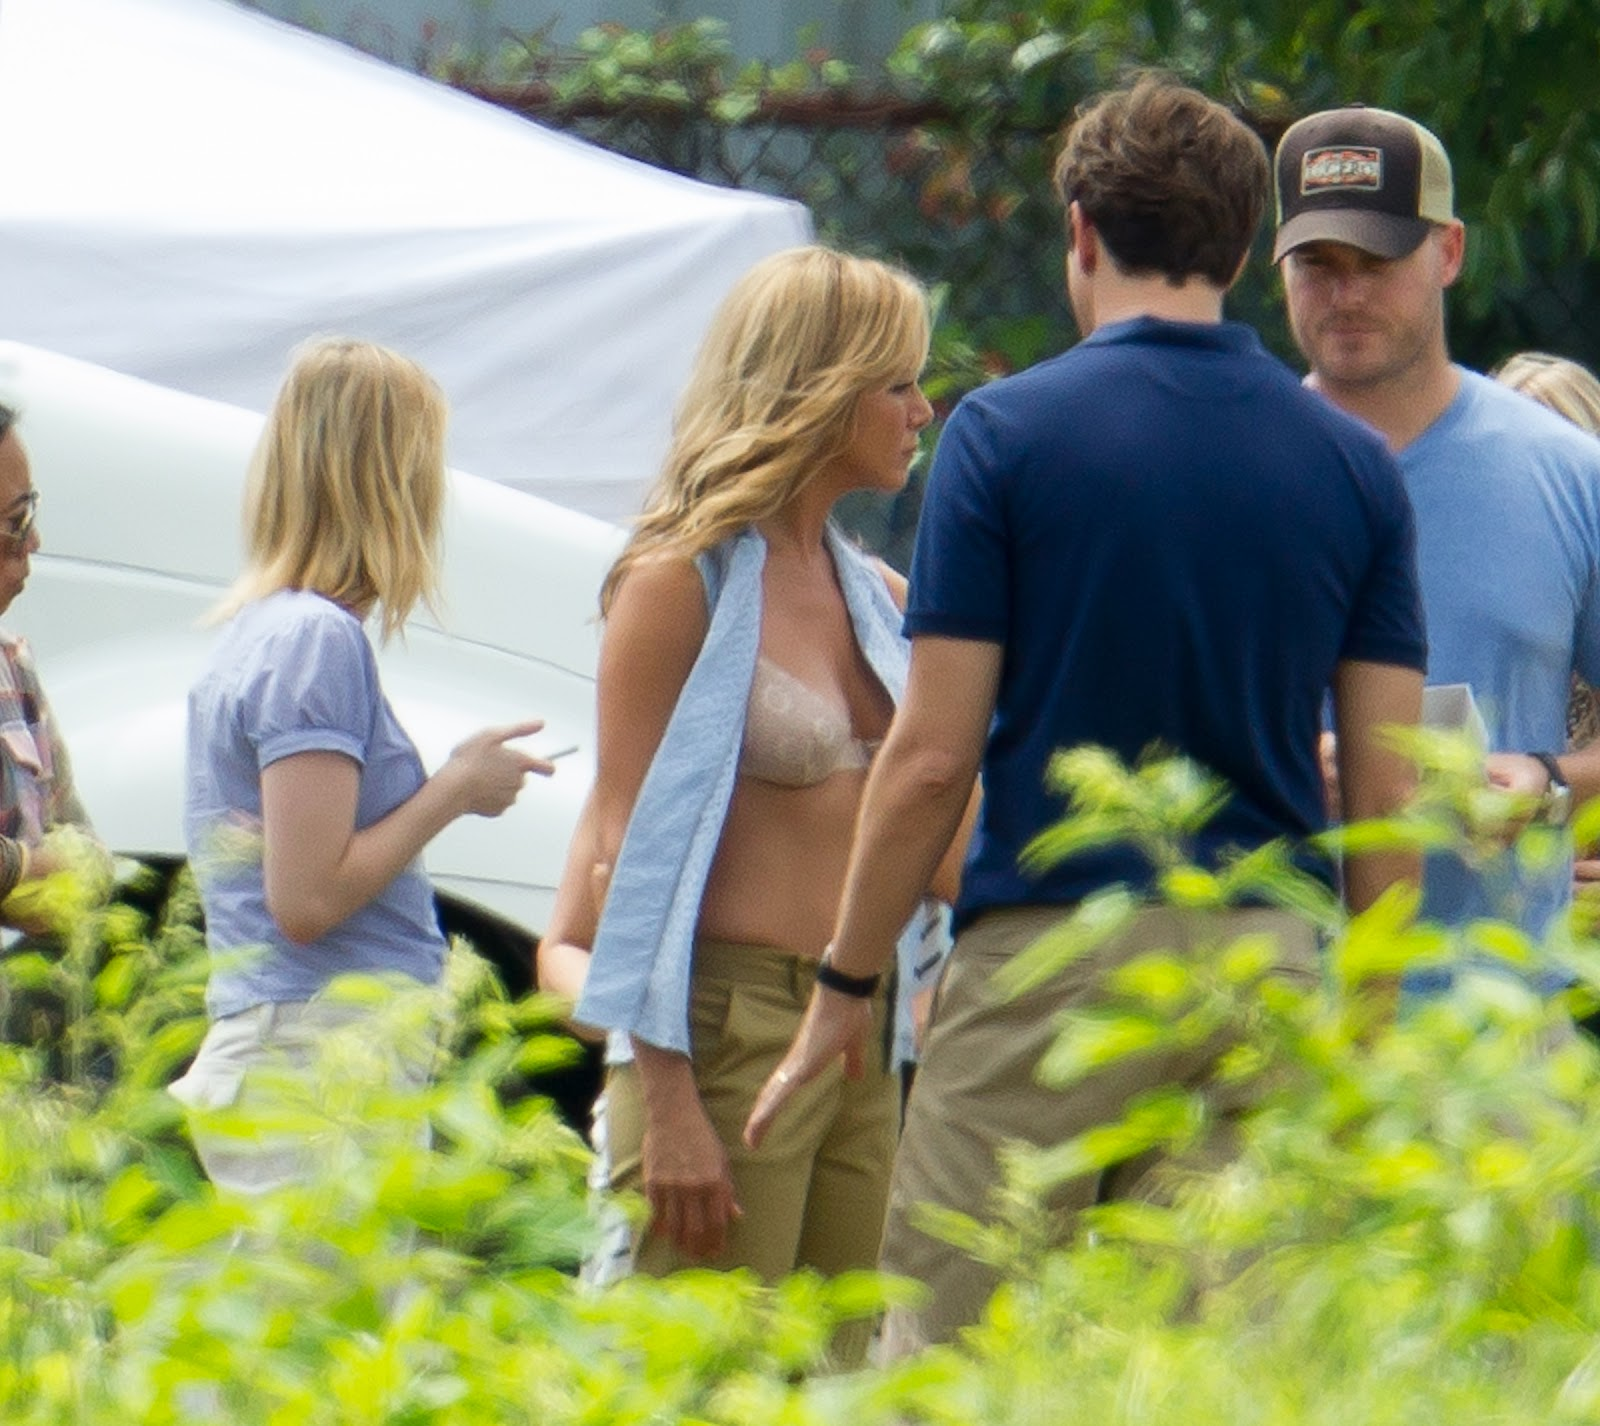 http://4.bp.blogspot.com/-jg0VbRrdJNI/UEeXLPLUmOI/AAAAAAAAIew/-5vvZMHvTN4/s1600/jennifer_aniston_in_a_bra_on_the_set_of_we_re_the_millers_in_wilmington_FjN1VeD.jpg